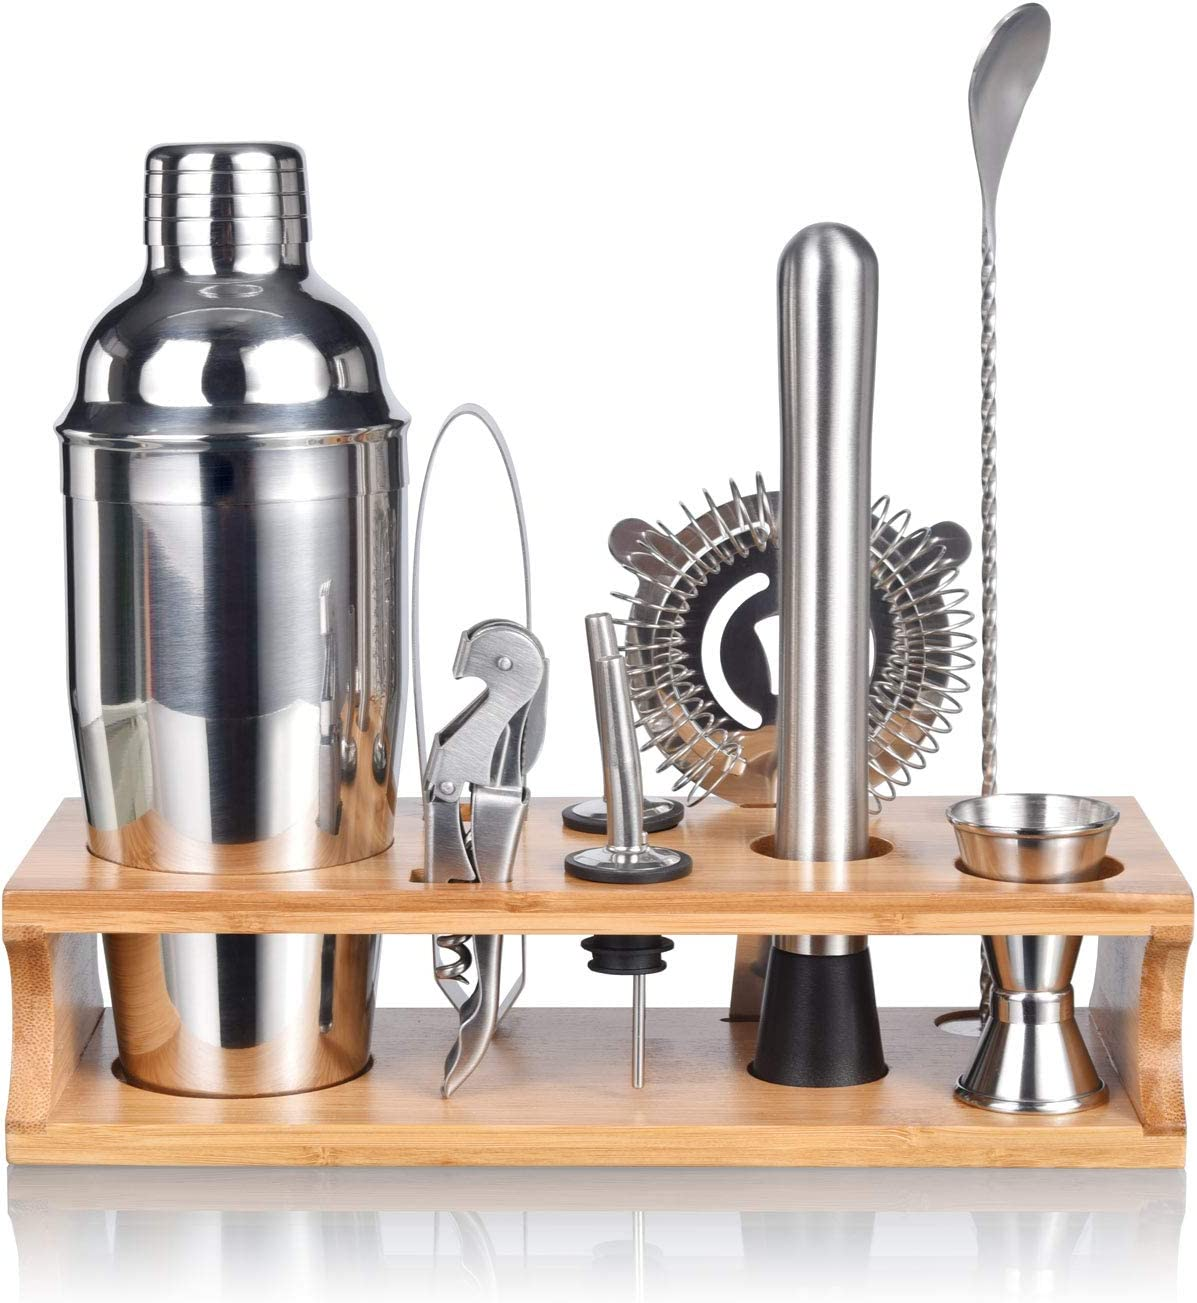 Esmula Bartender Kit with Stylish Bamboo Stand, 10 Piece Cocktail Shaker Set for Mixed Drink, Professional Stainless Steel Bar Tool Set - Cocktail Recipes Booklet(25 oz)